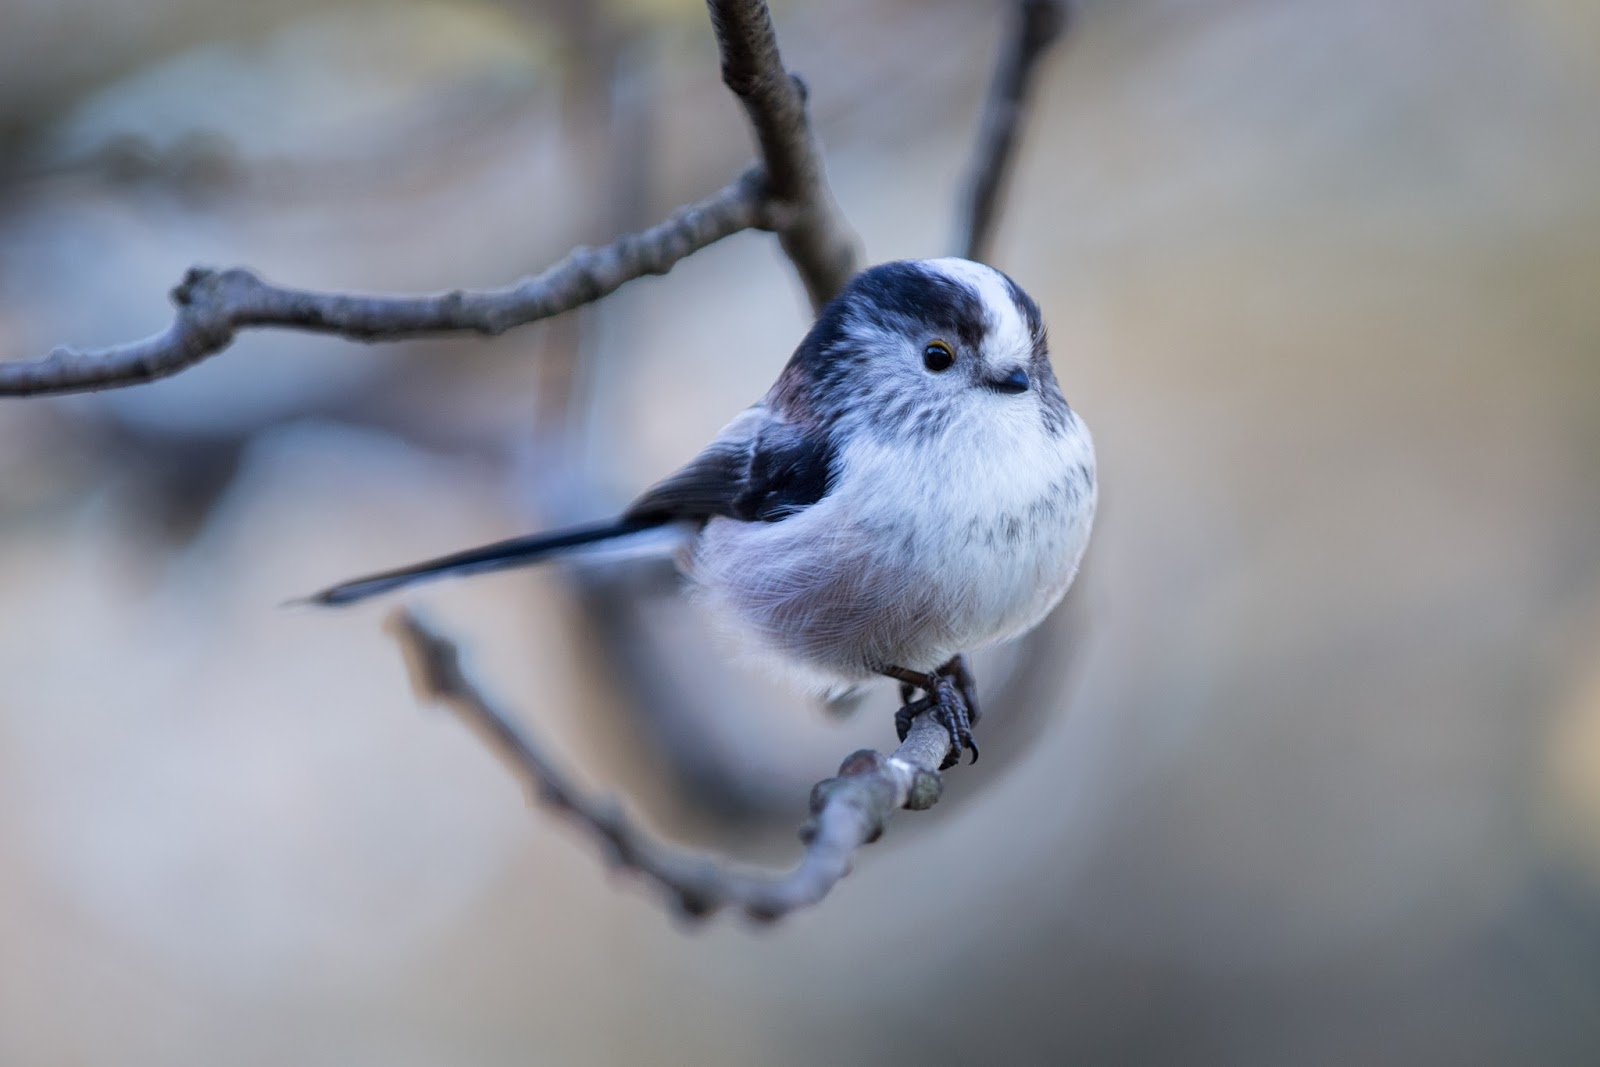 Thorburn long-tailed tits